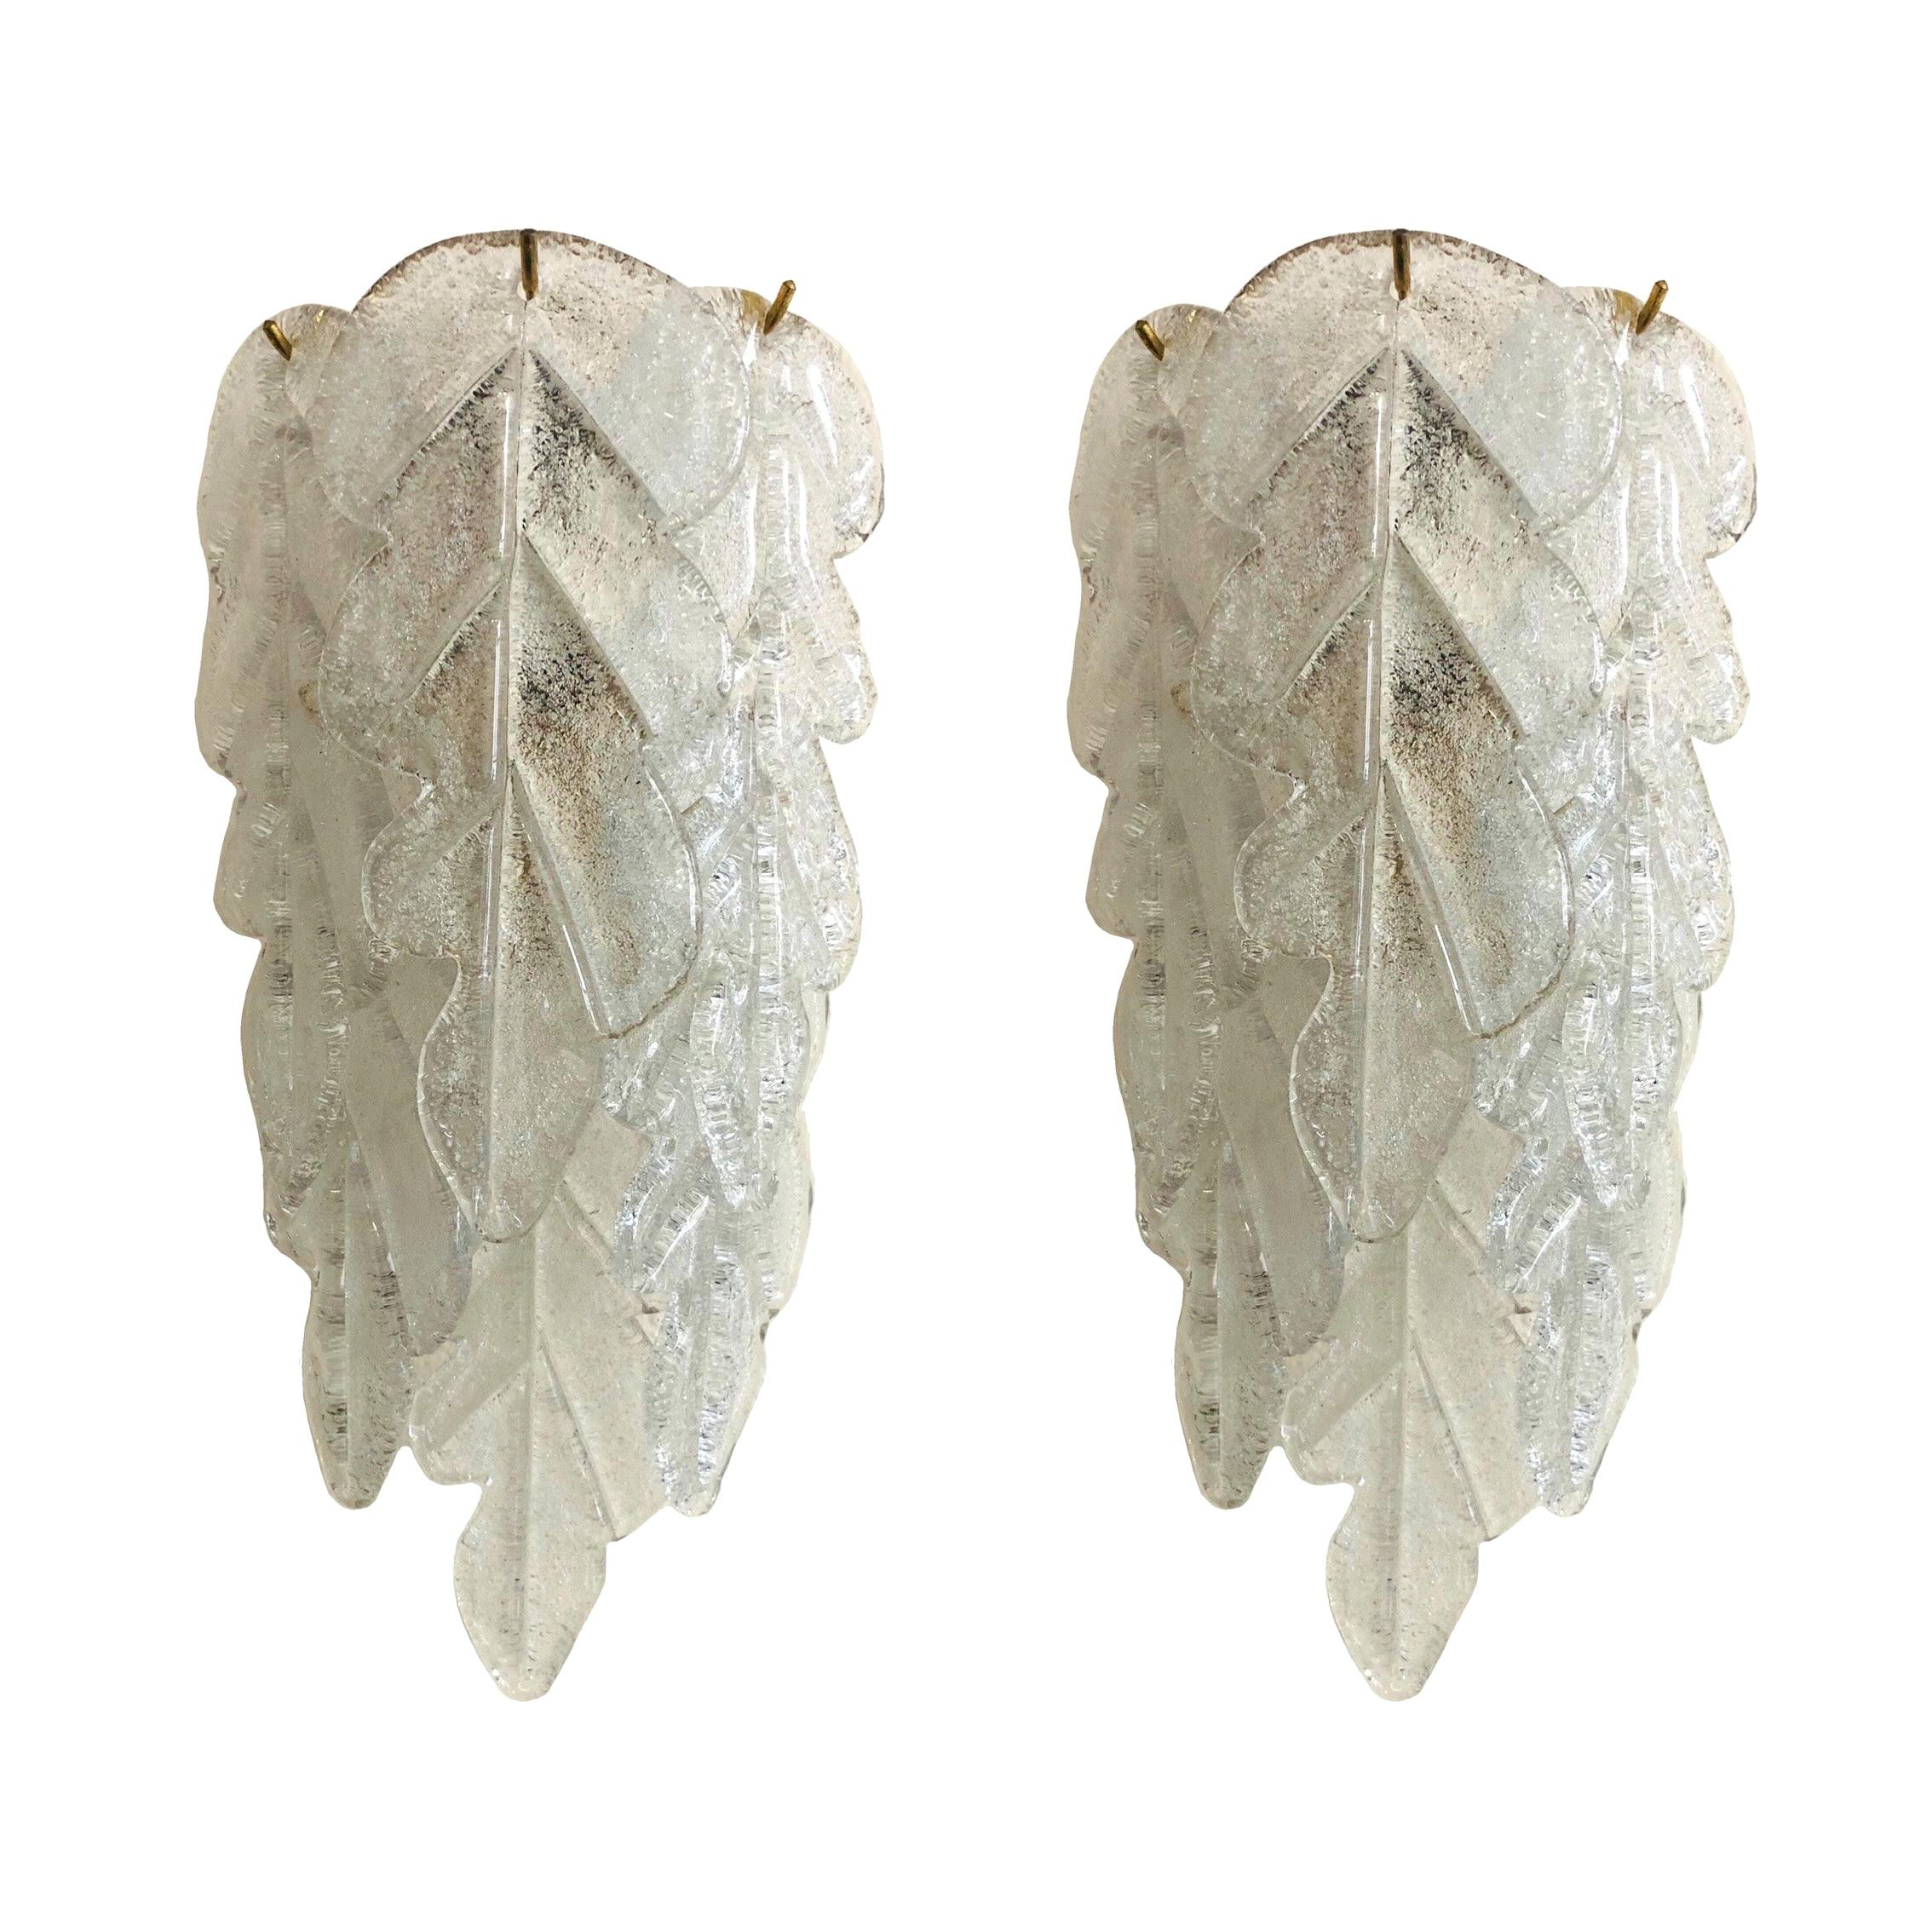 Italian Midcentury Pair of Clear Murano Glass Wall Sconces by Mazzega, 1970s